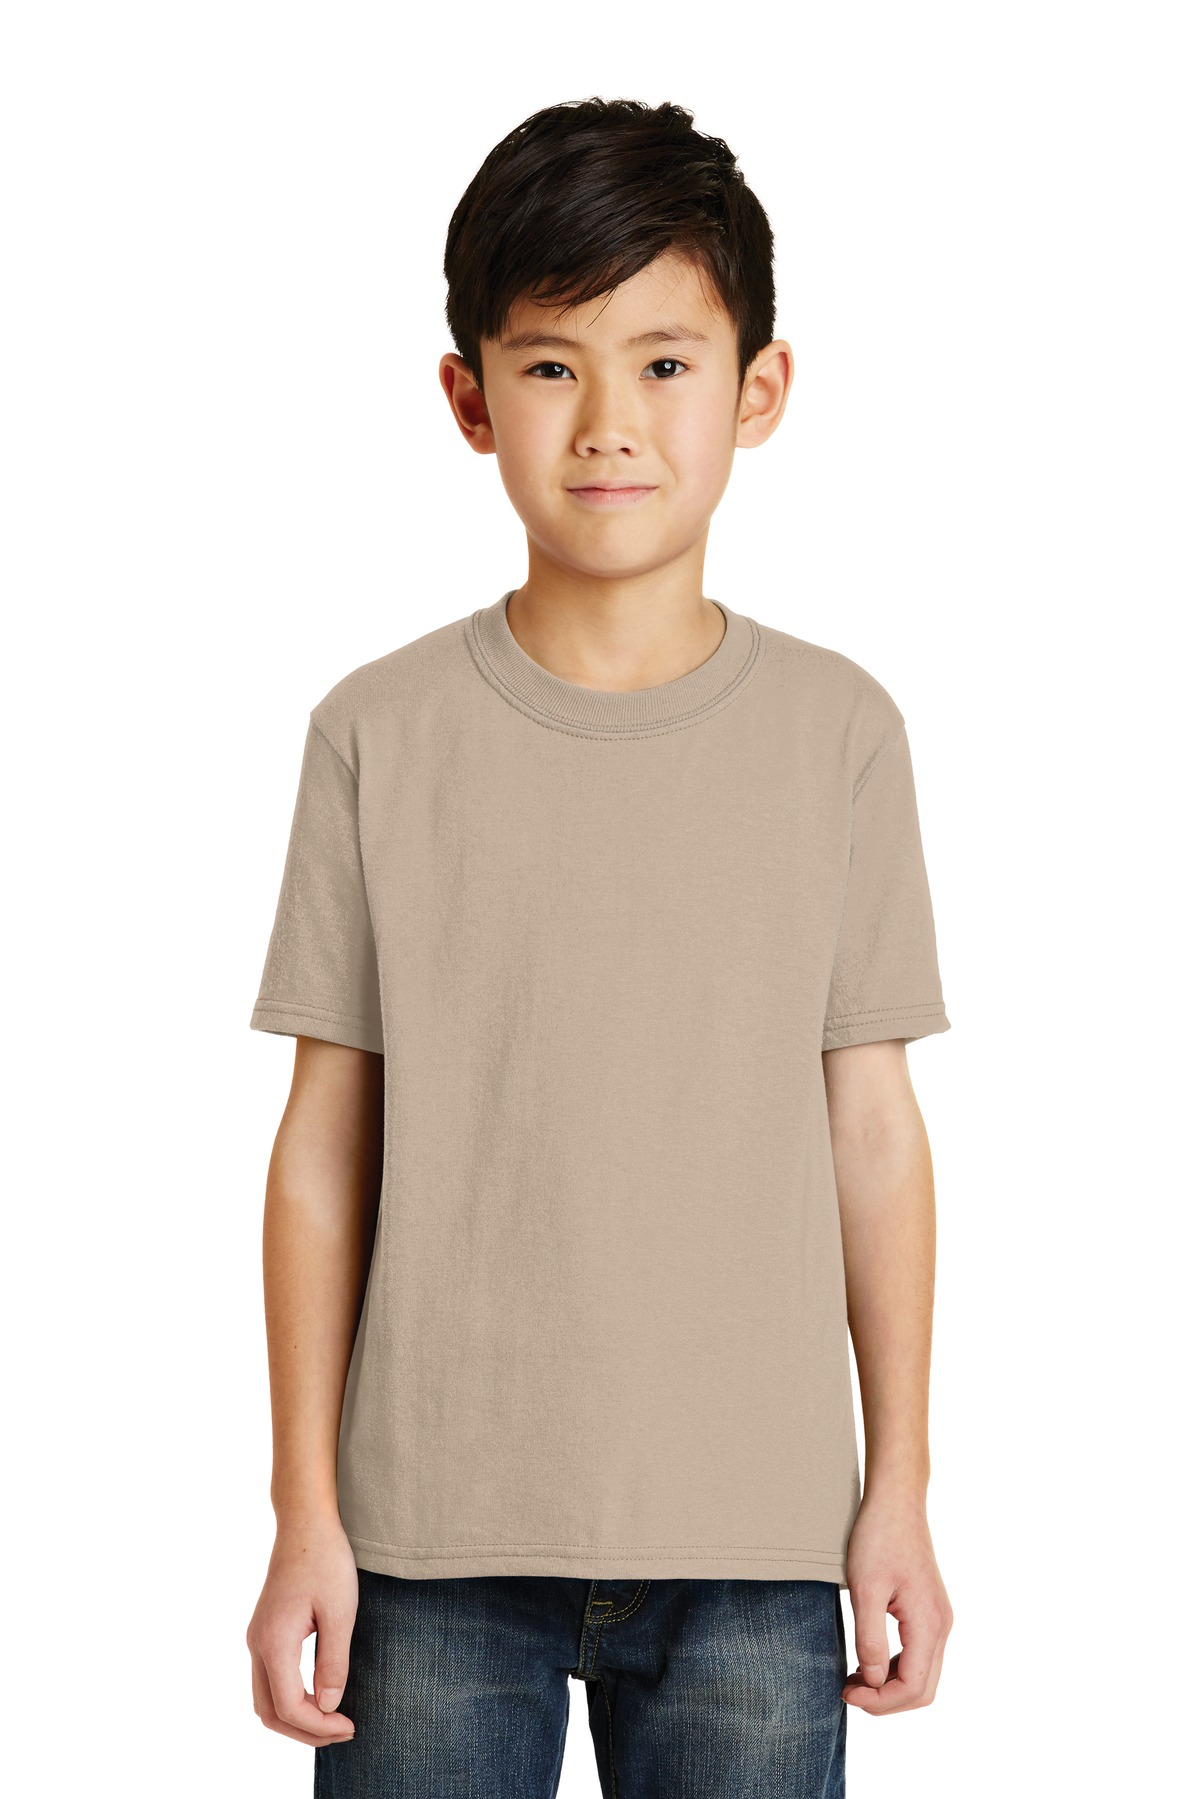 Port & Company ®  - Youth Core Blend Tee.  PC55Y - Desert Sand